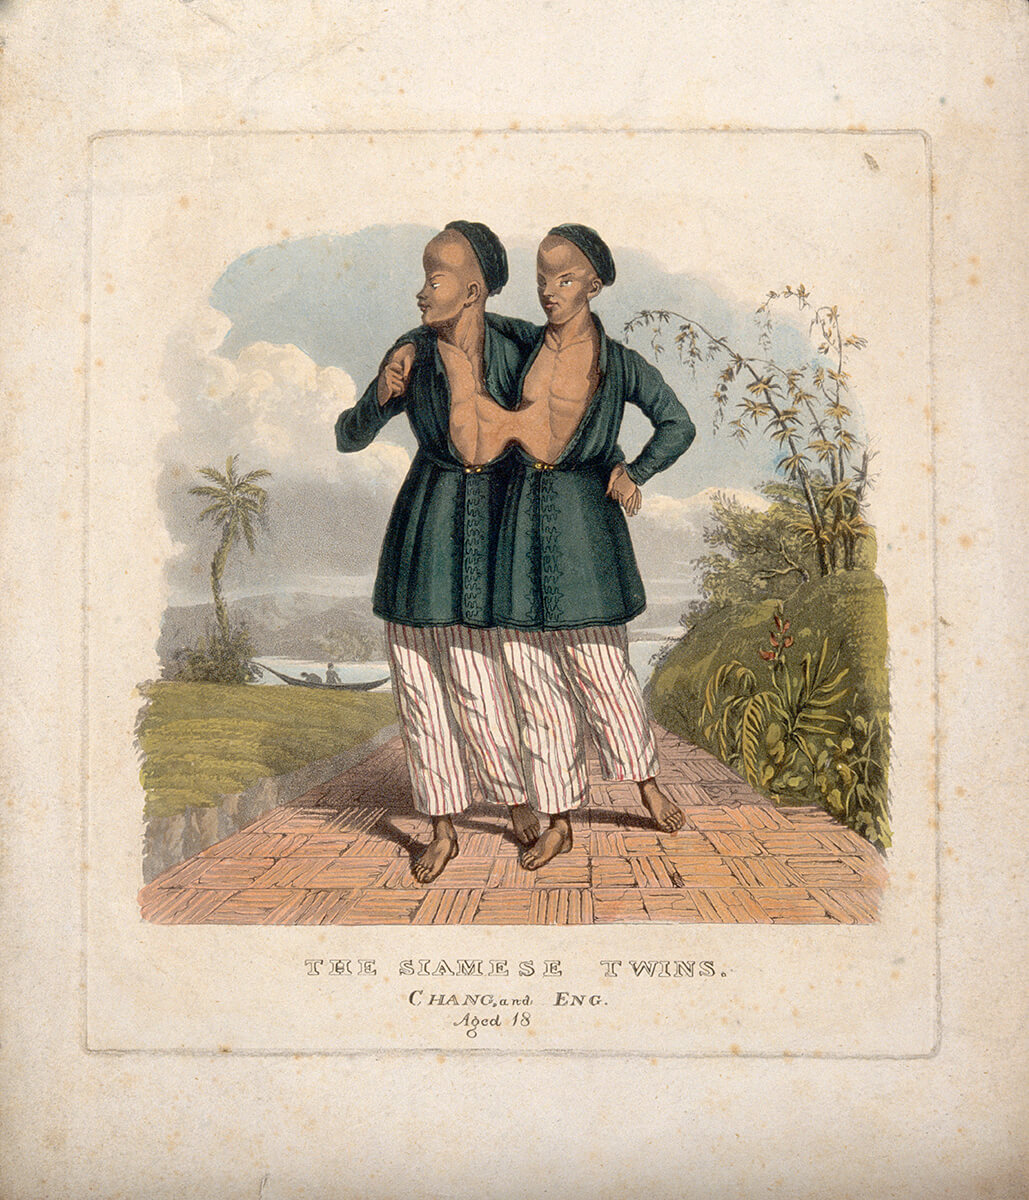 The Siamese twins, Chang and Eng, Aged 18. Aquatint with etching and watercolor by unknown creator. Courtesy of the Wellcome Collection. Creative Commons license CC BY 4.0.